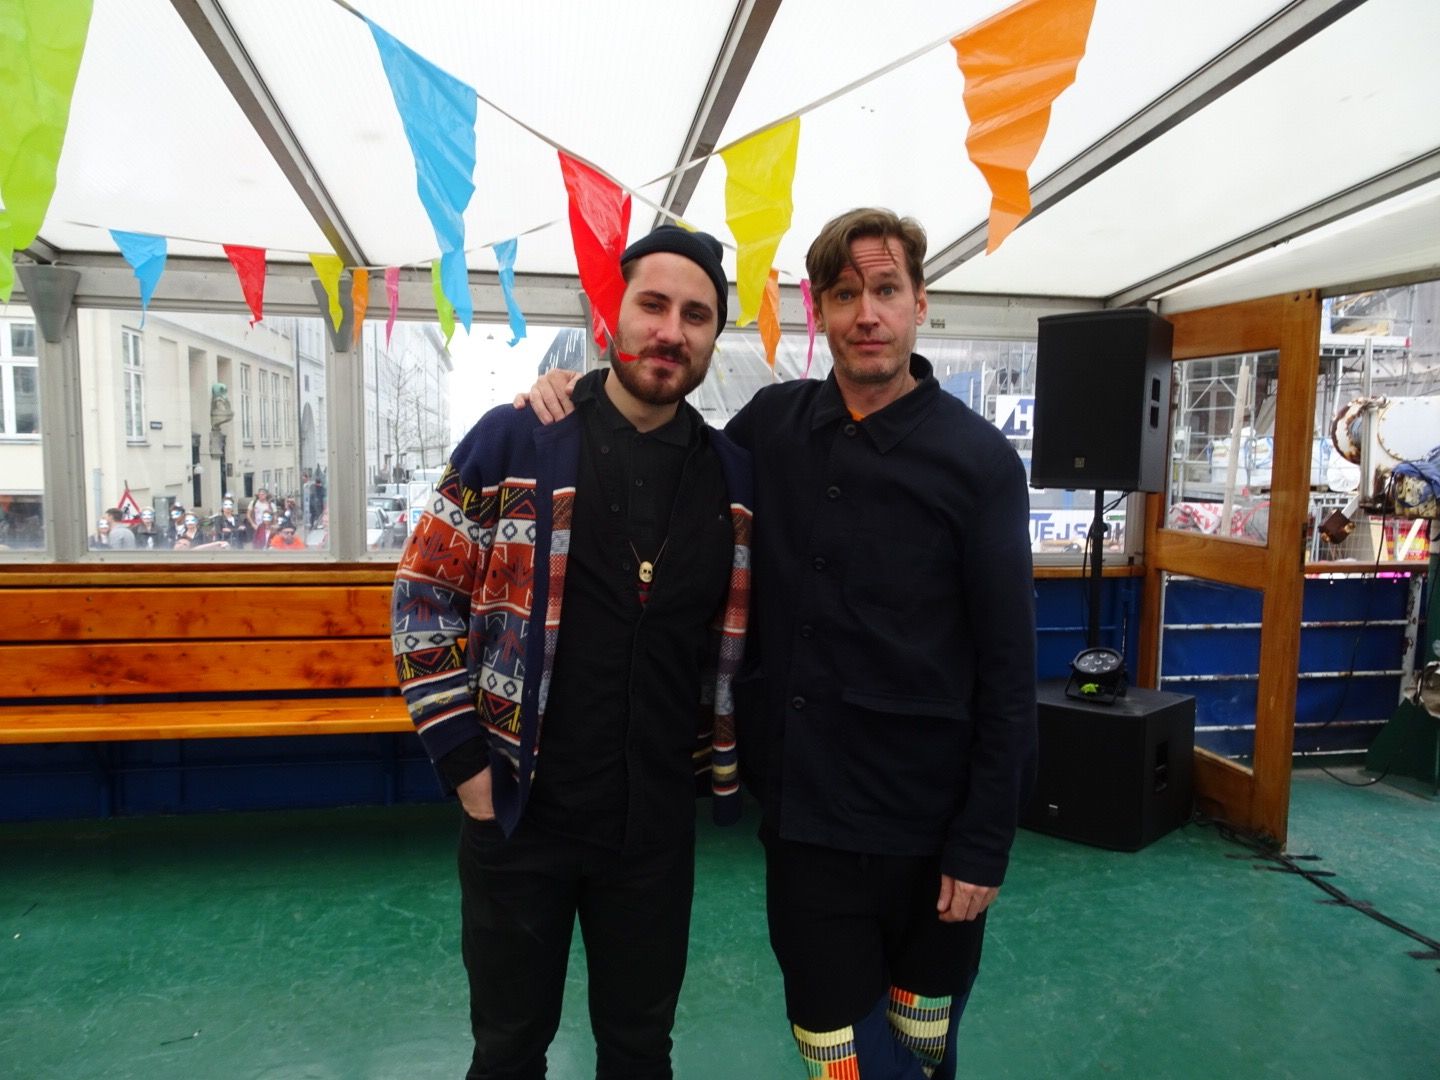 Kenneth Bager, COMA, AMOC, Copenhagen, Denmark, 2016,  Wolf Müller, Apiento, DISH, Trine Lindegaard, 2016, Party, Boat Party